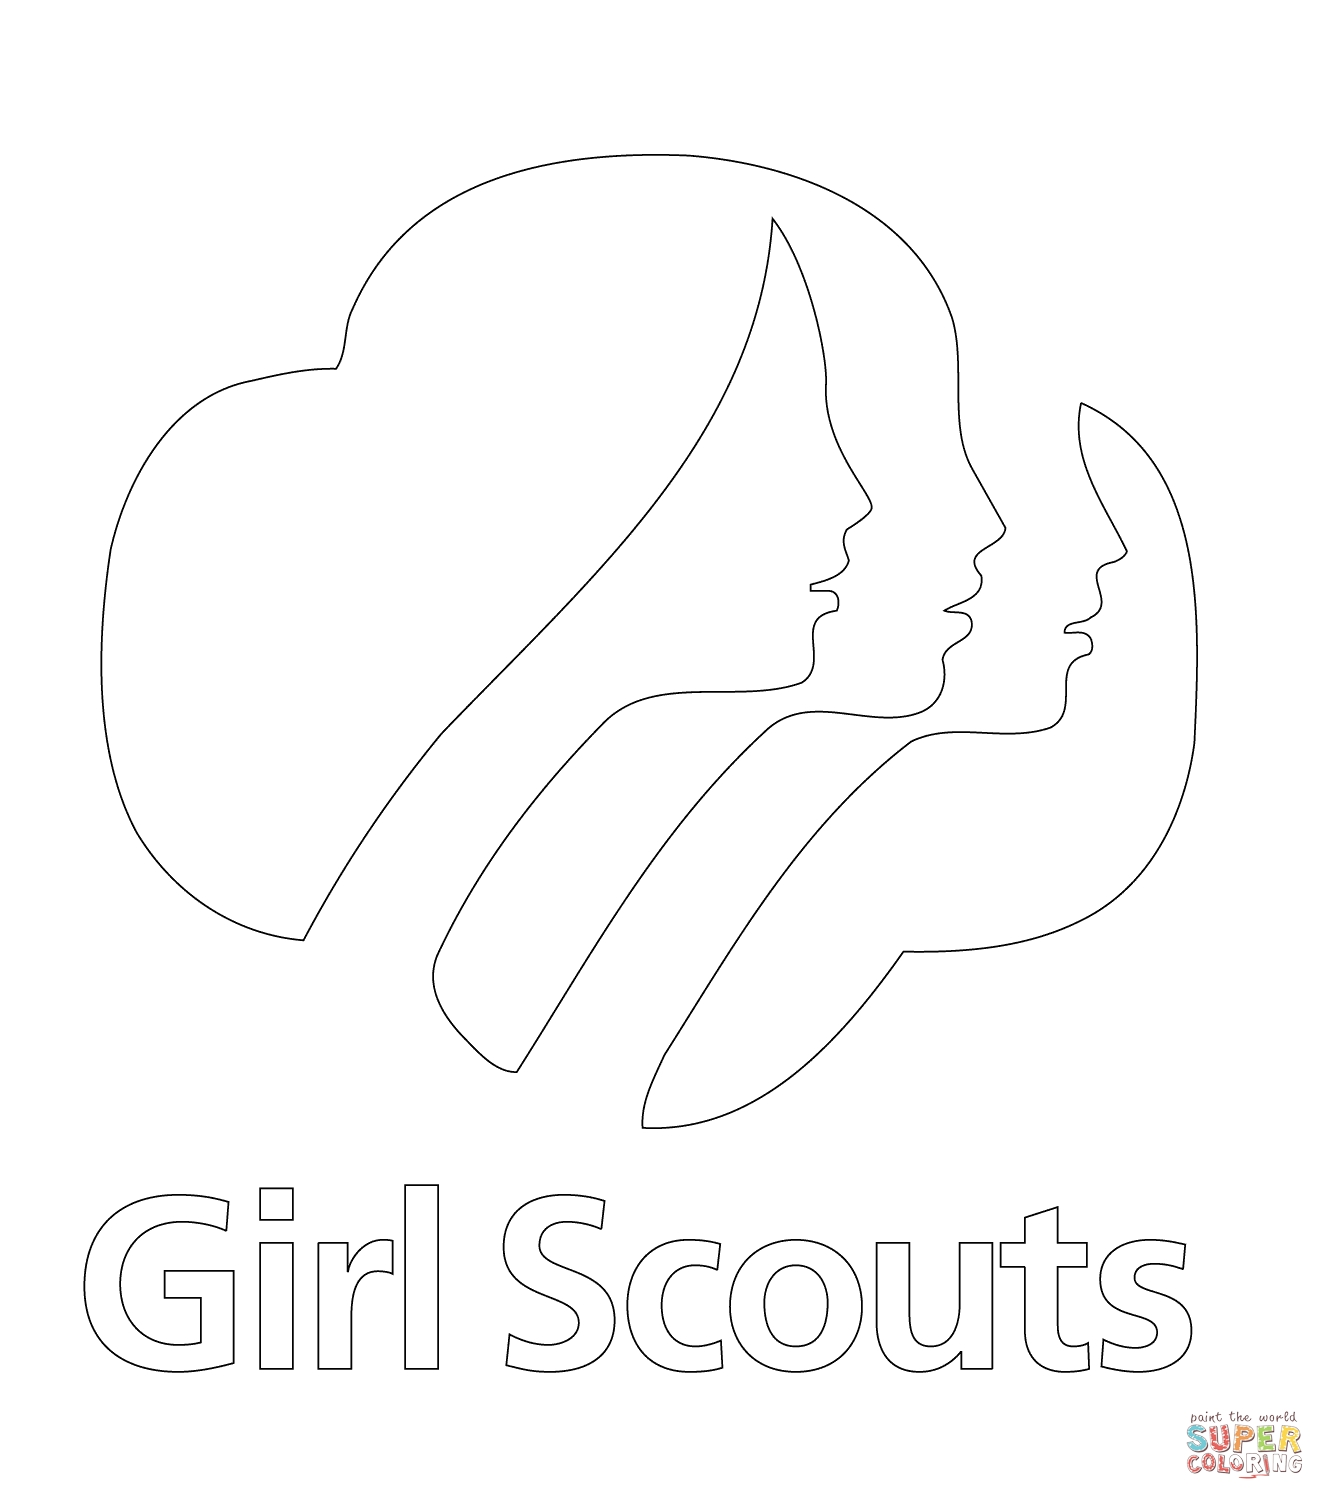 girl scout cookie coloring pages - girl scouts logo